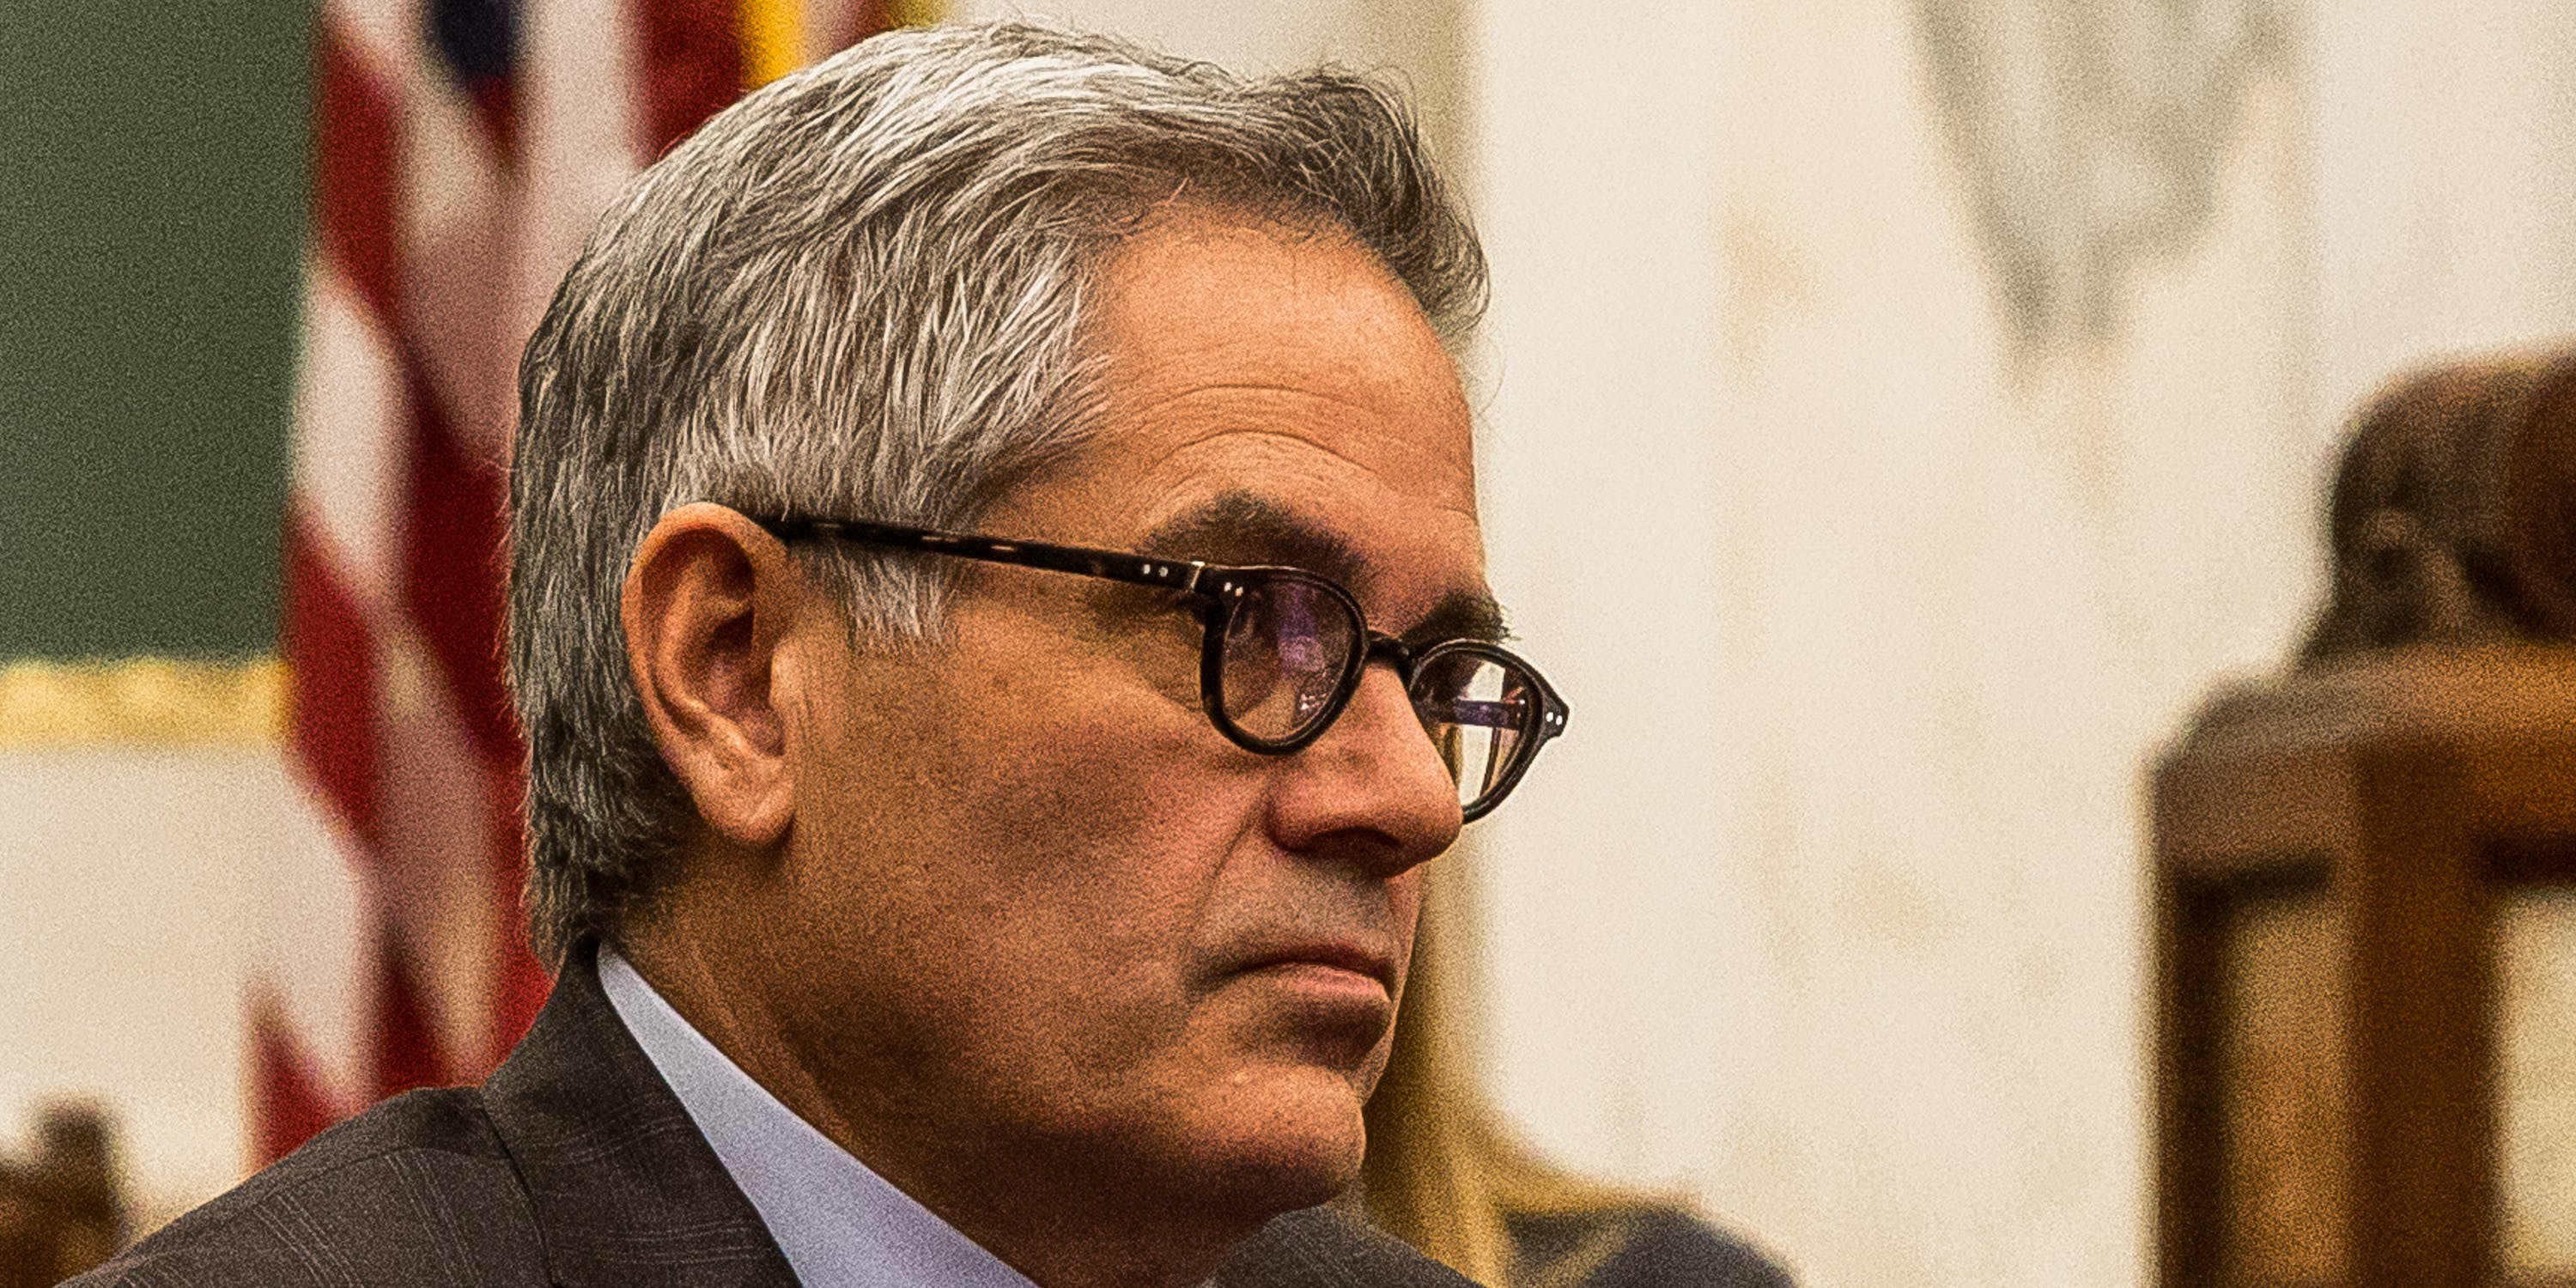 Philadelphia D.A. Larry Krasner Announces The City Will No Longer Prosecute Marijuana Possession